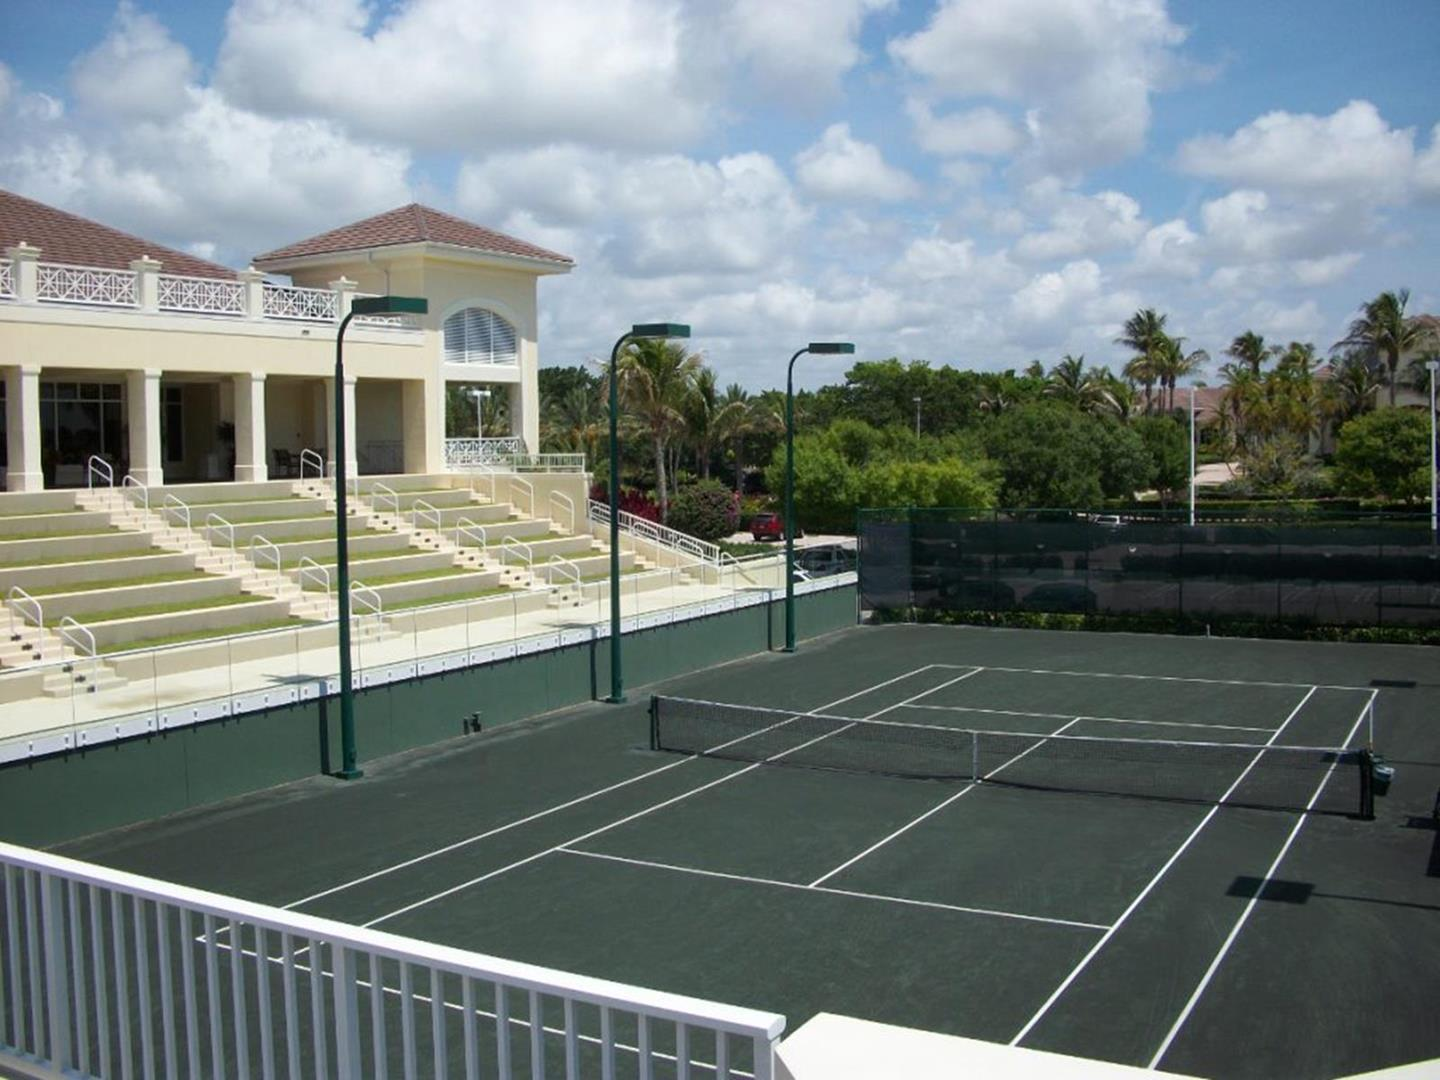 Tennis clubs in palm beach gardens fl garden ftempo for Sports bars palm beach gardens